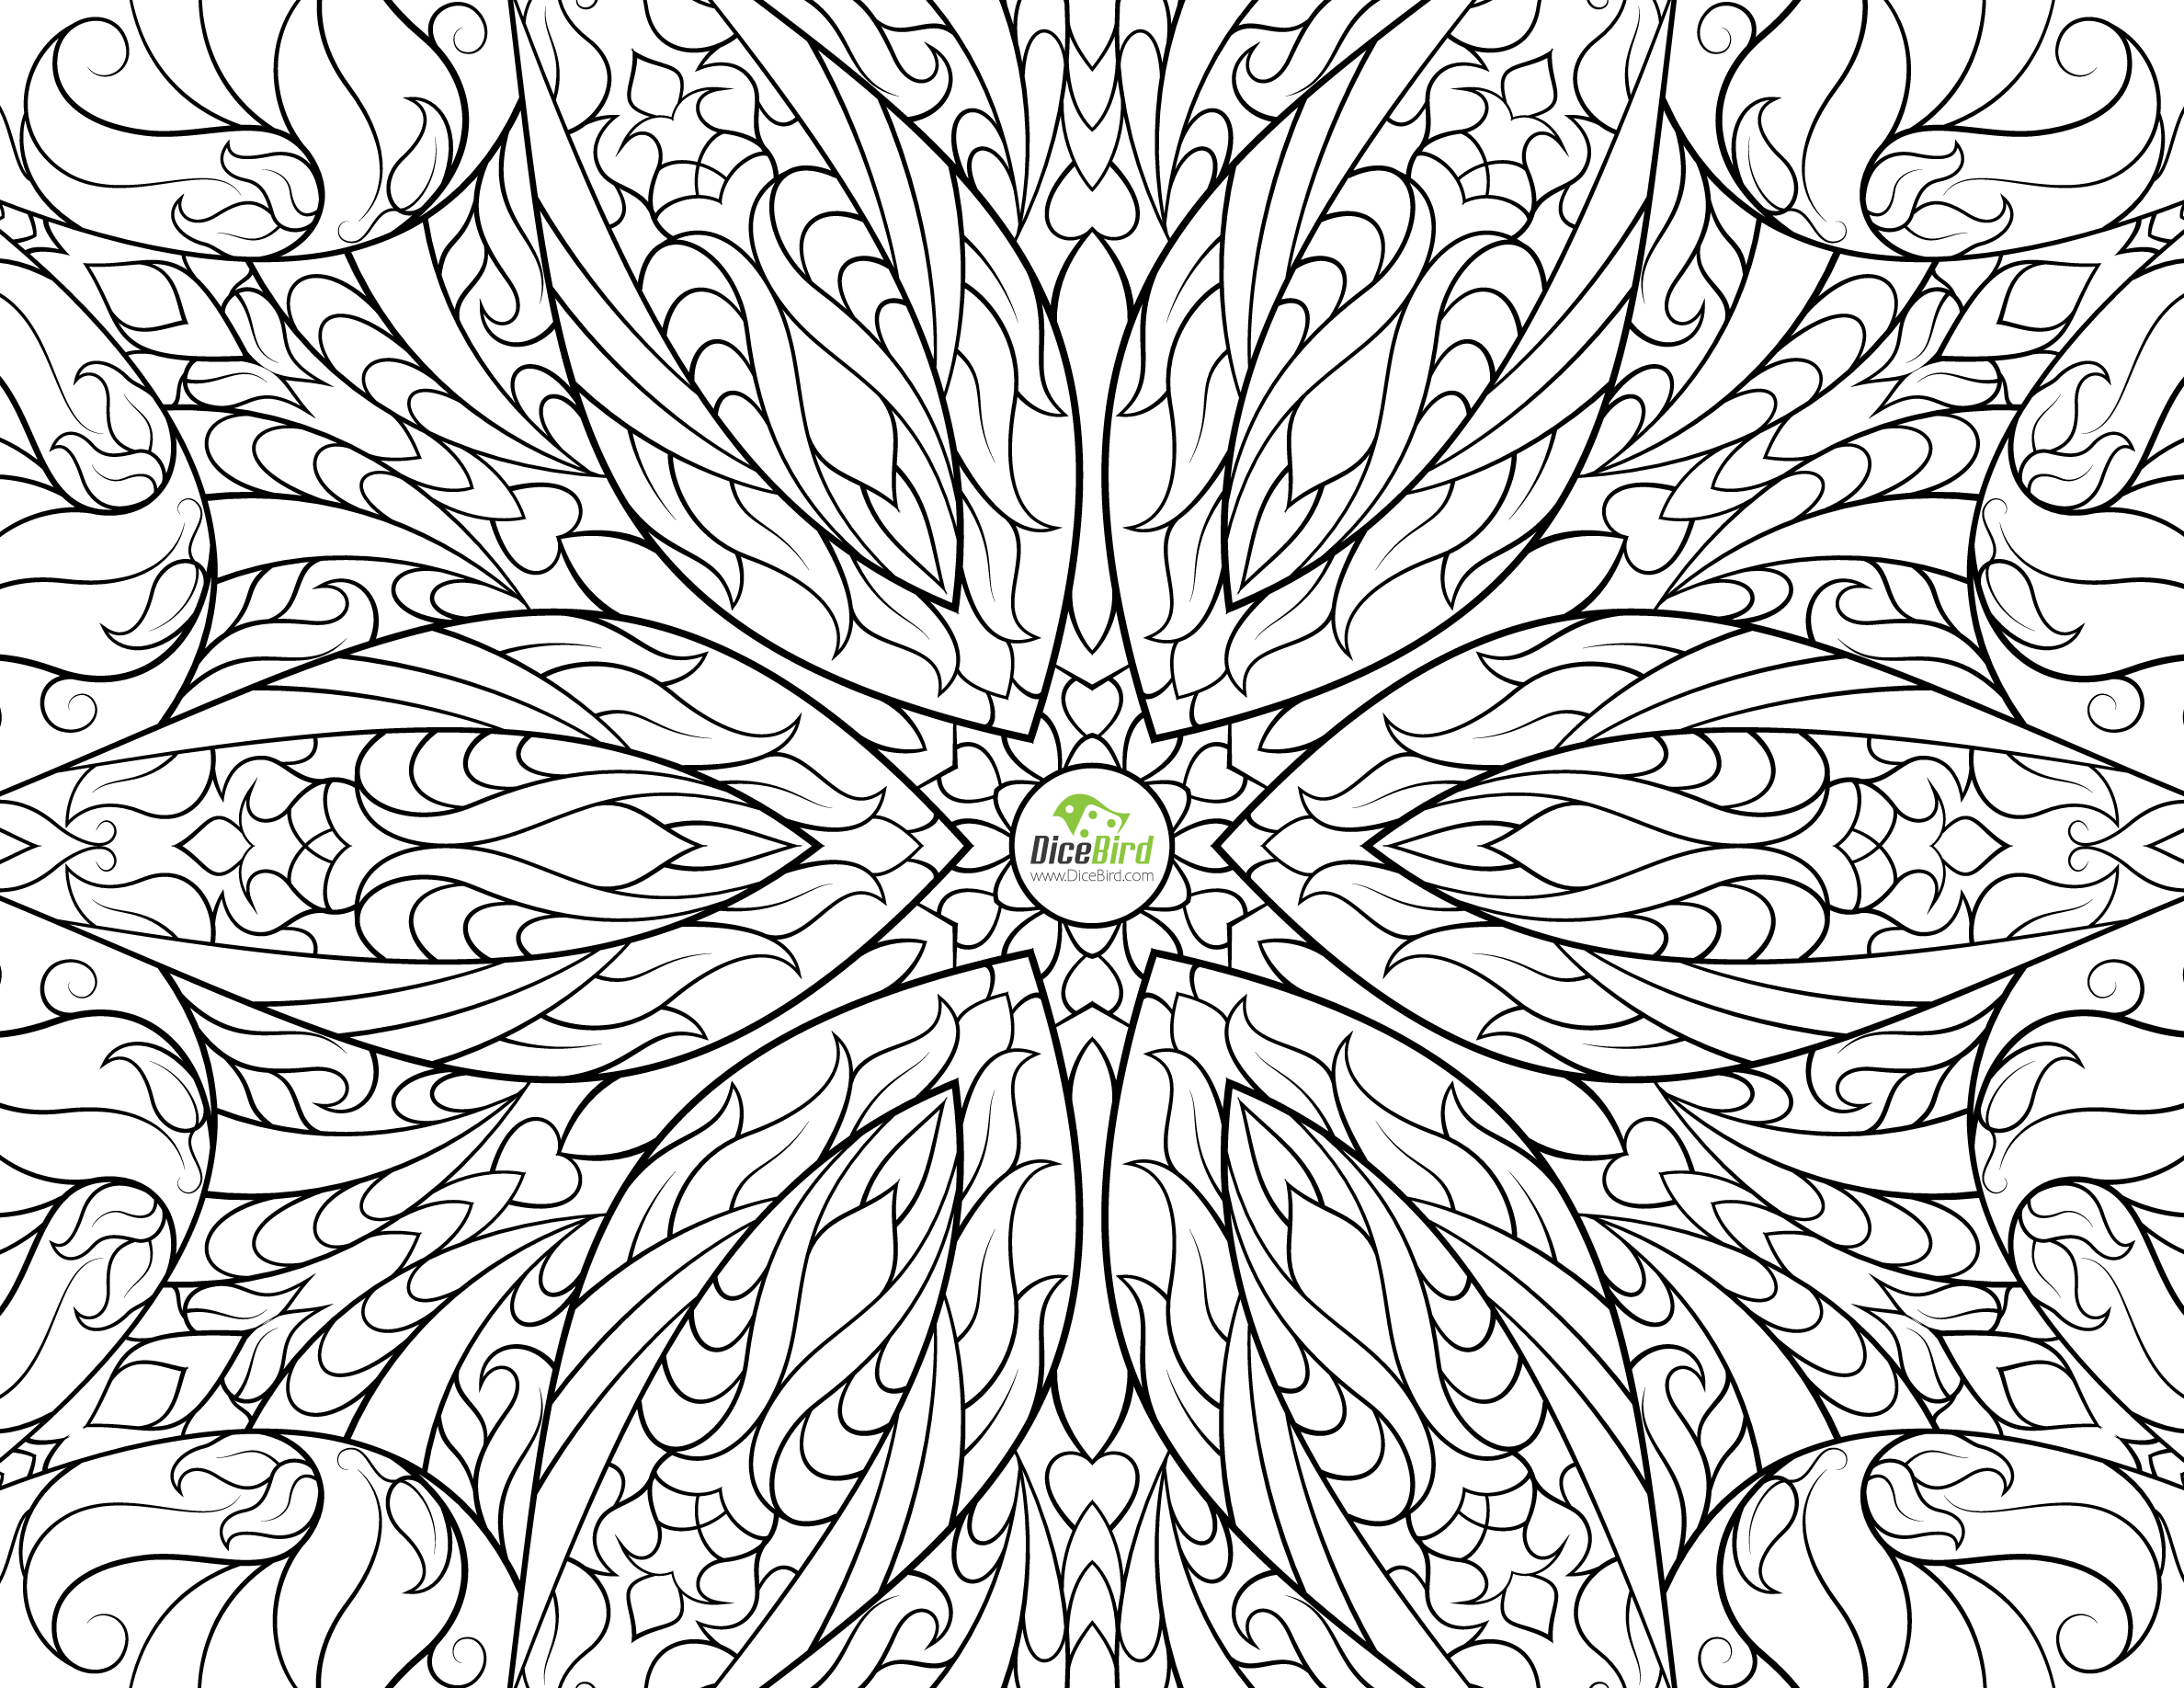 coloring worksheets hard very difficult coloring pages for adults at getcolorings coloring worksheets hard